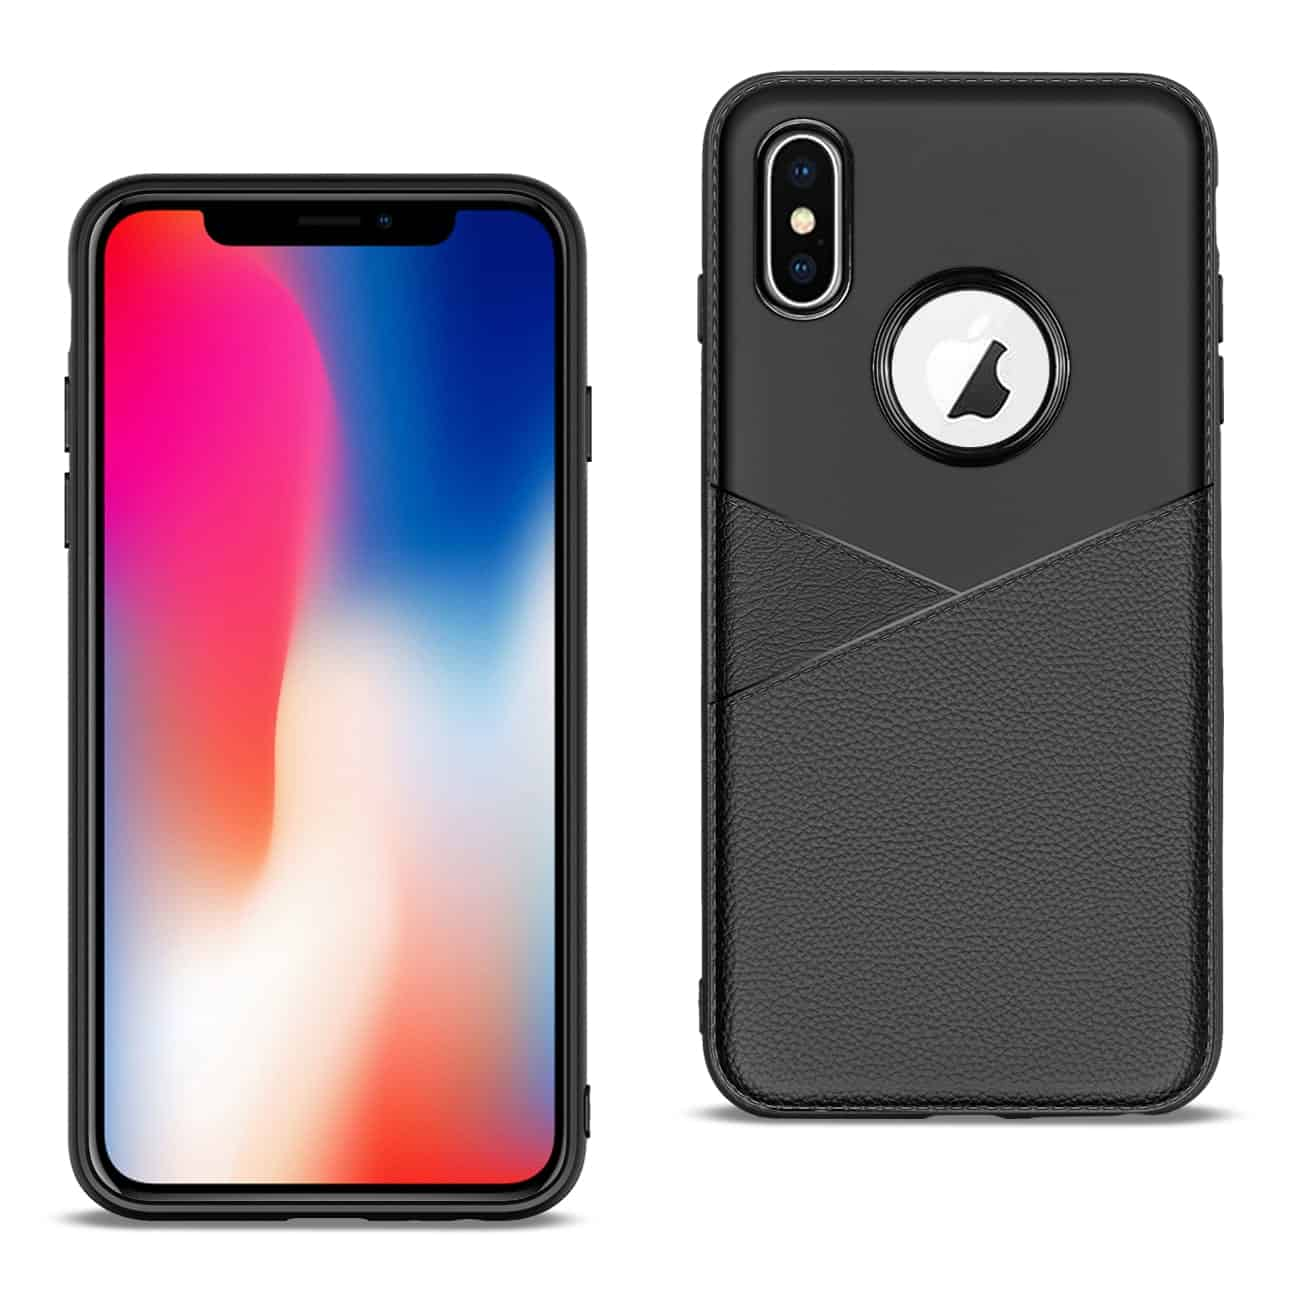 Apple iPhone X Good quality phone case in Black